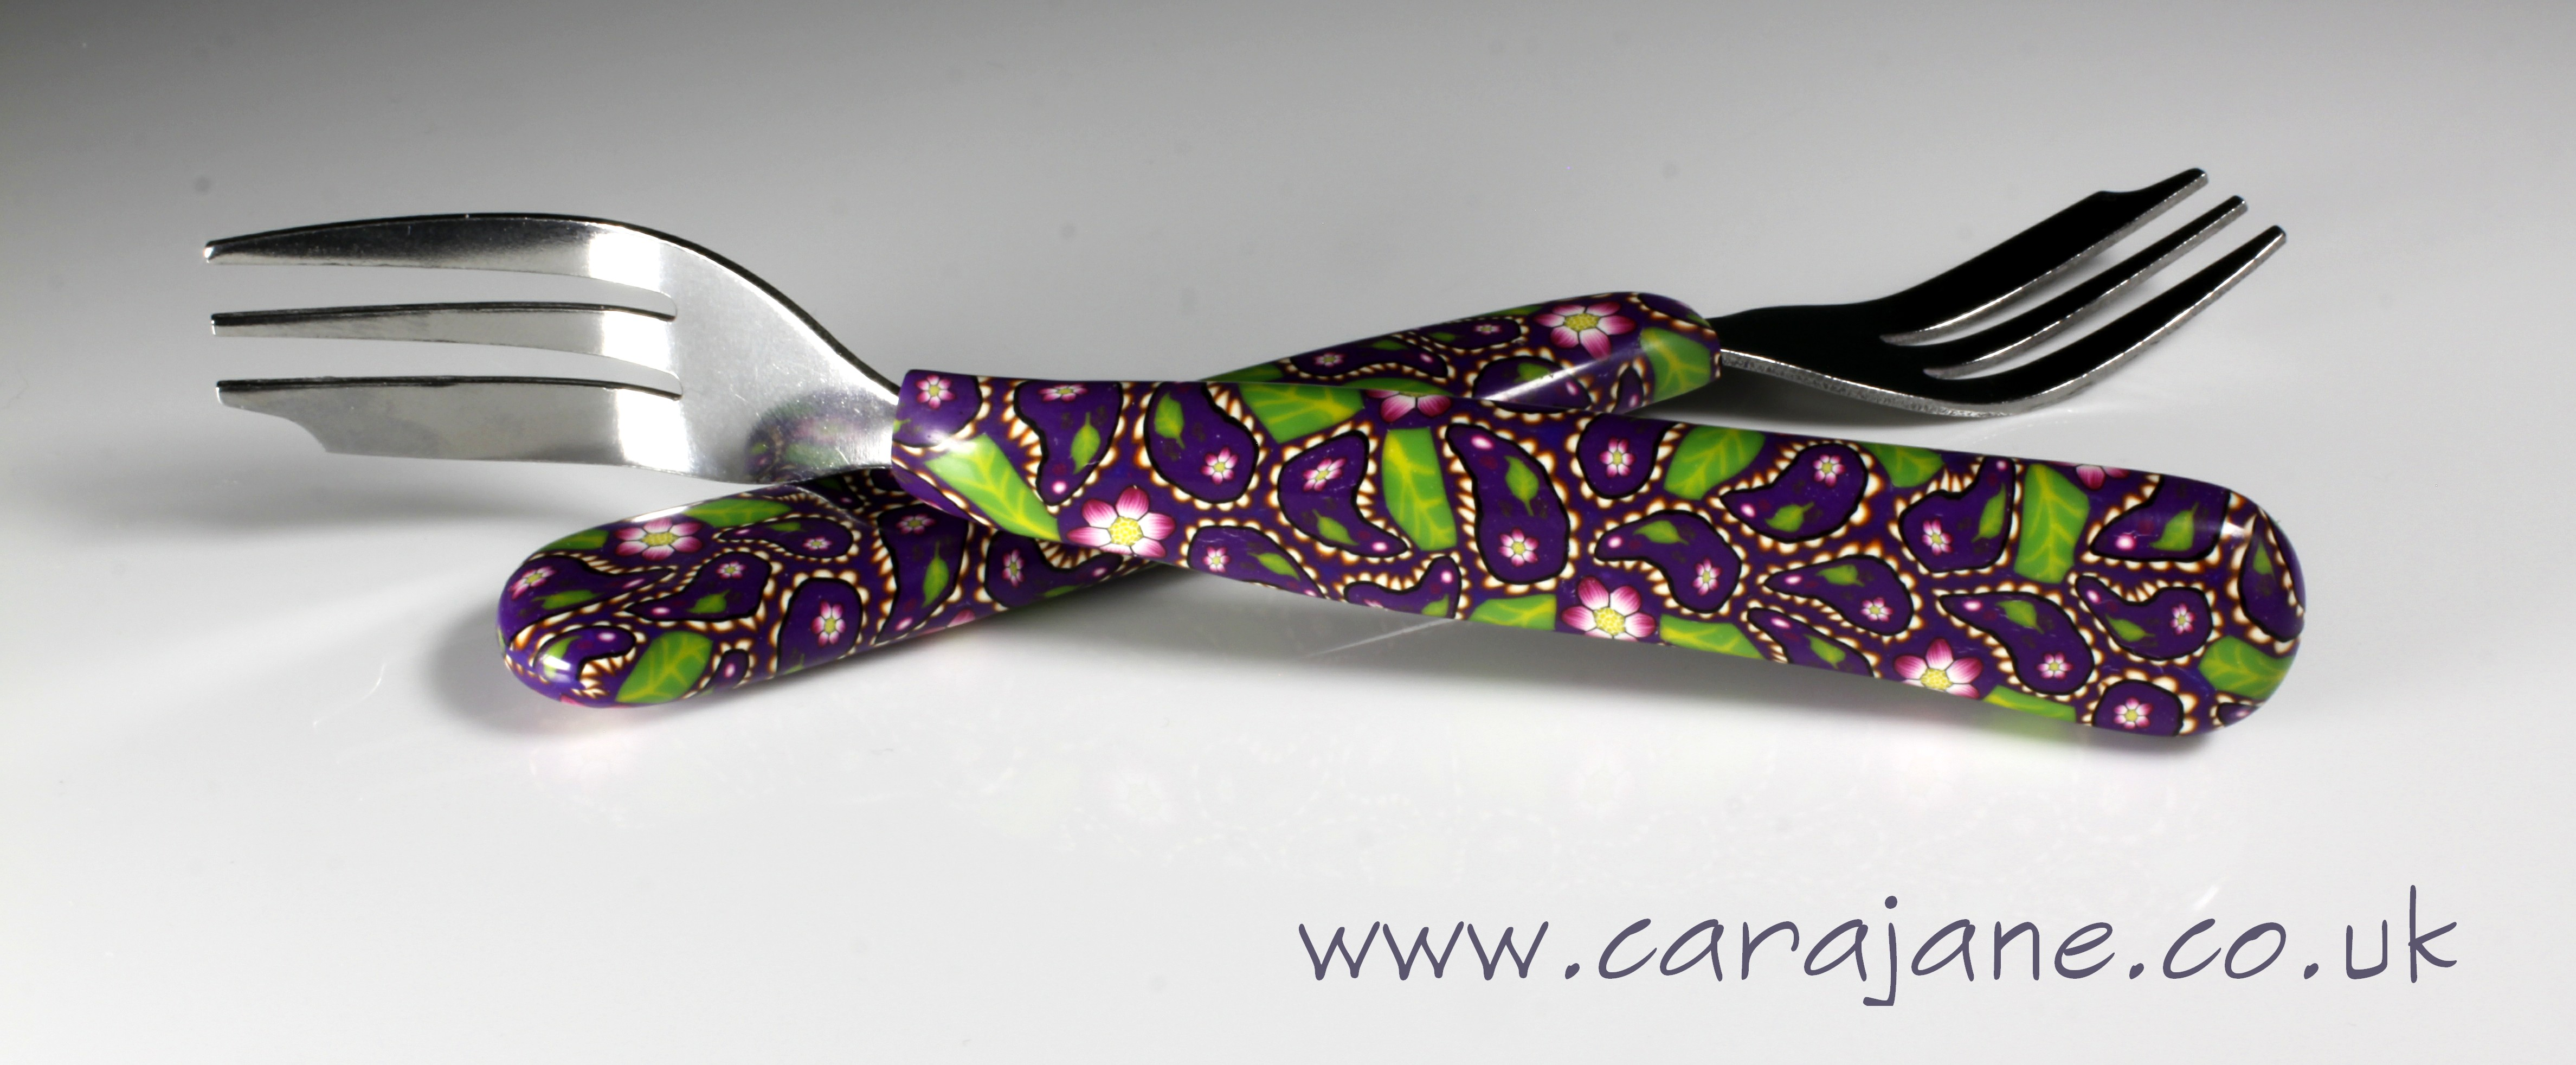 Polymer clay decorated cake forks - purple paisley